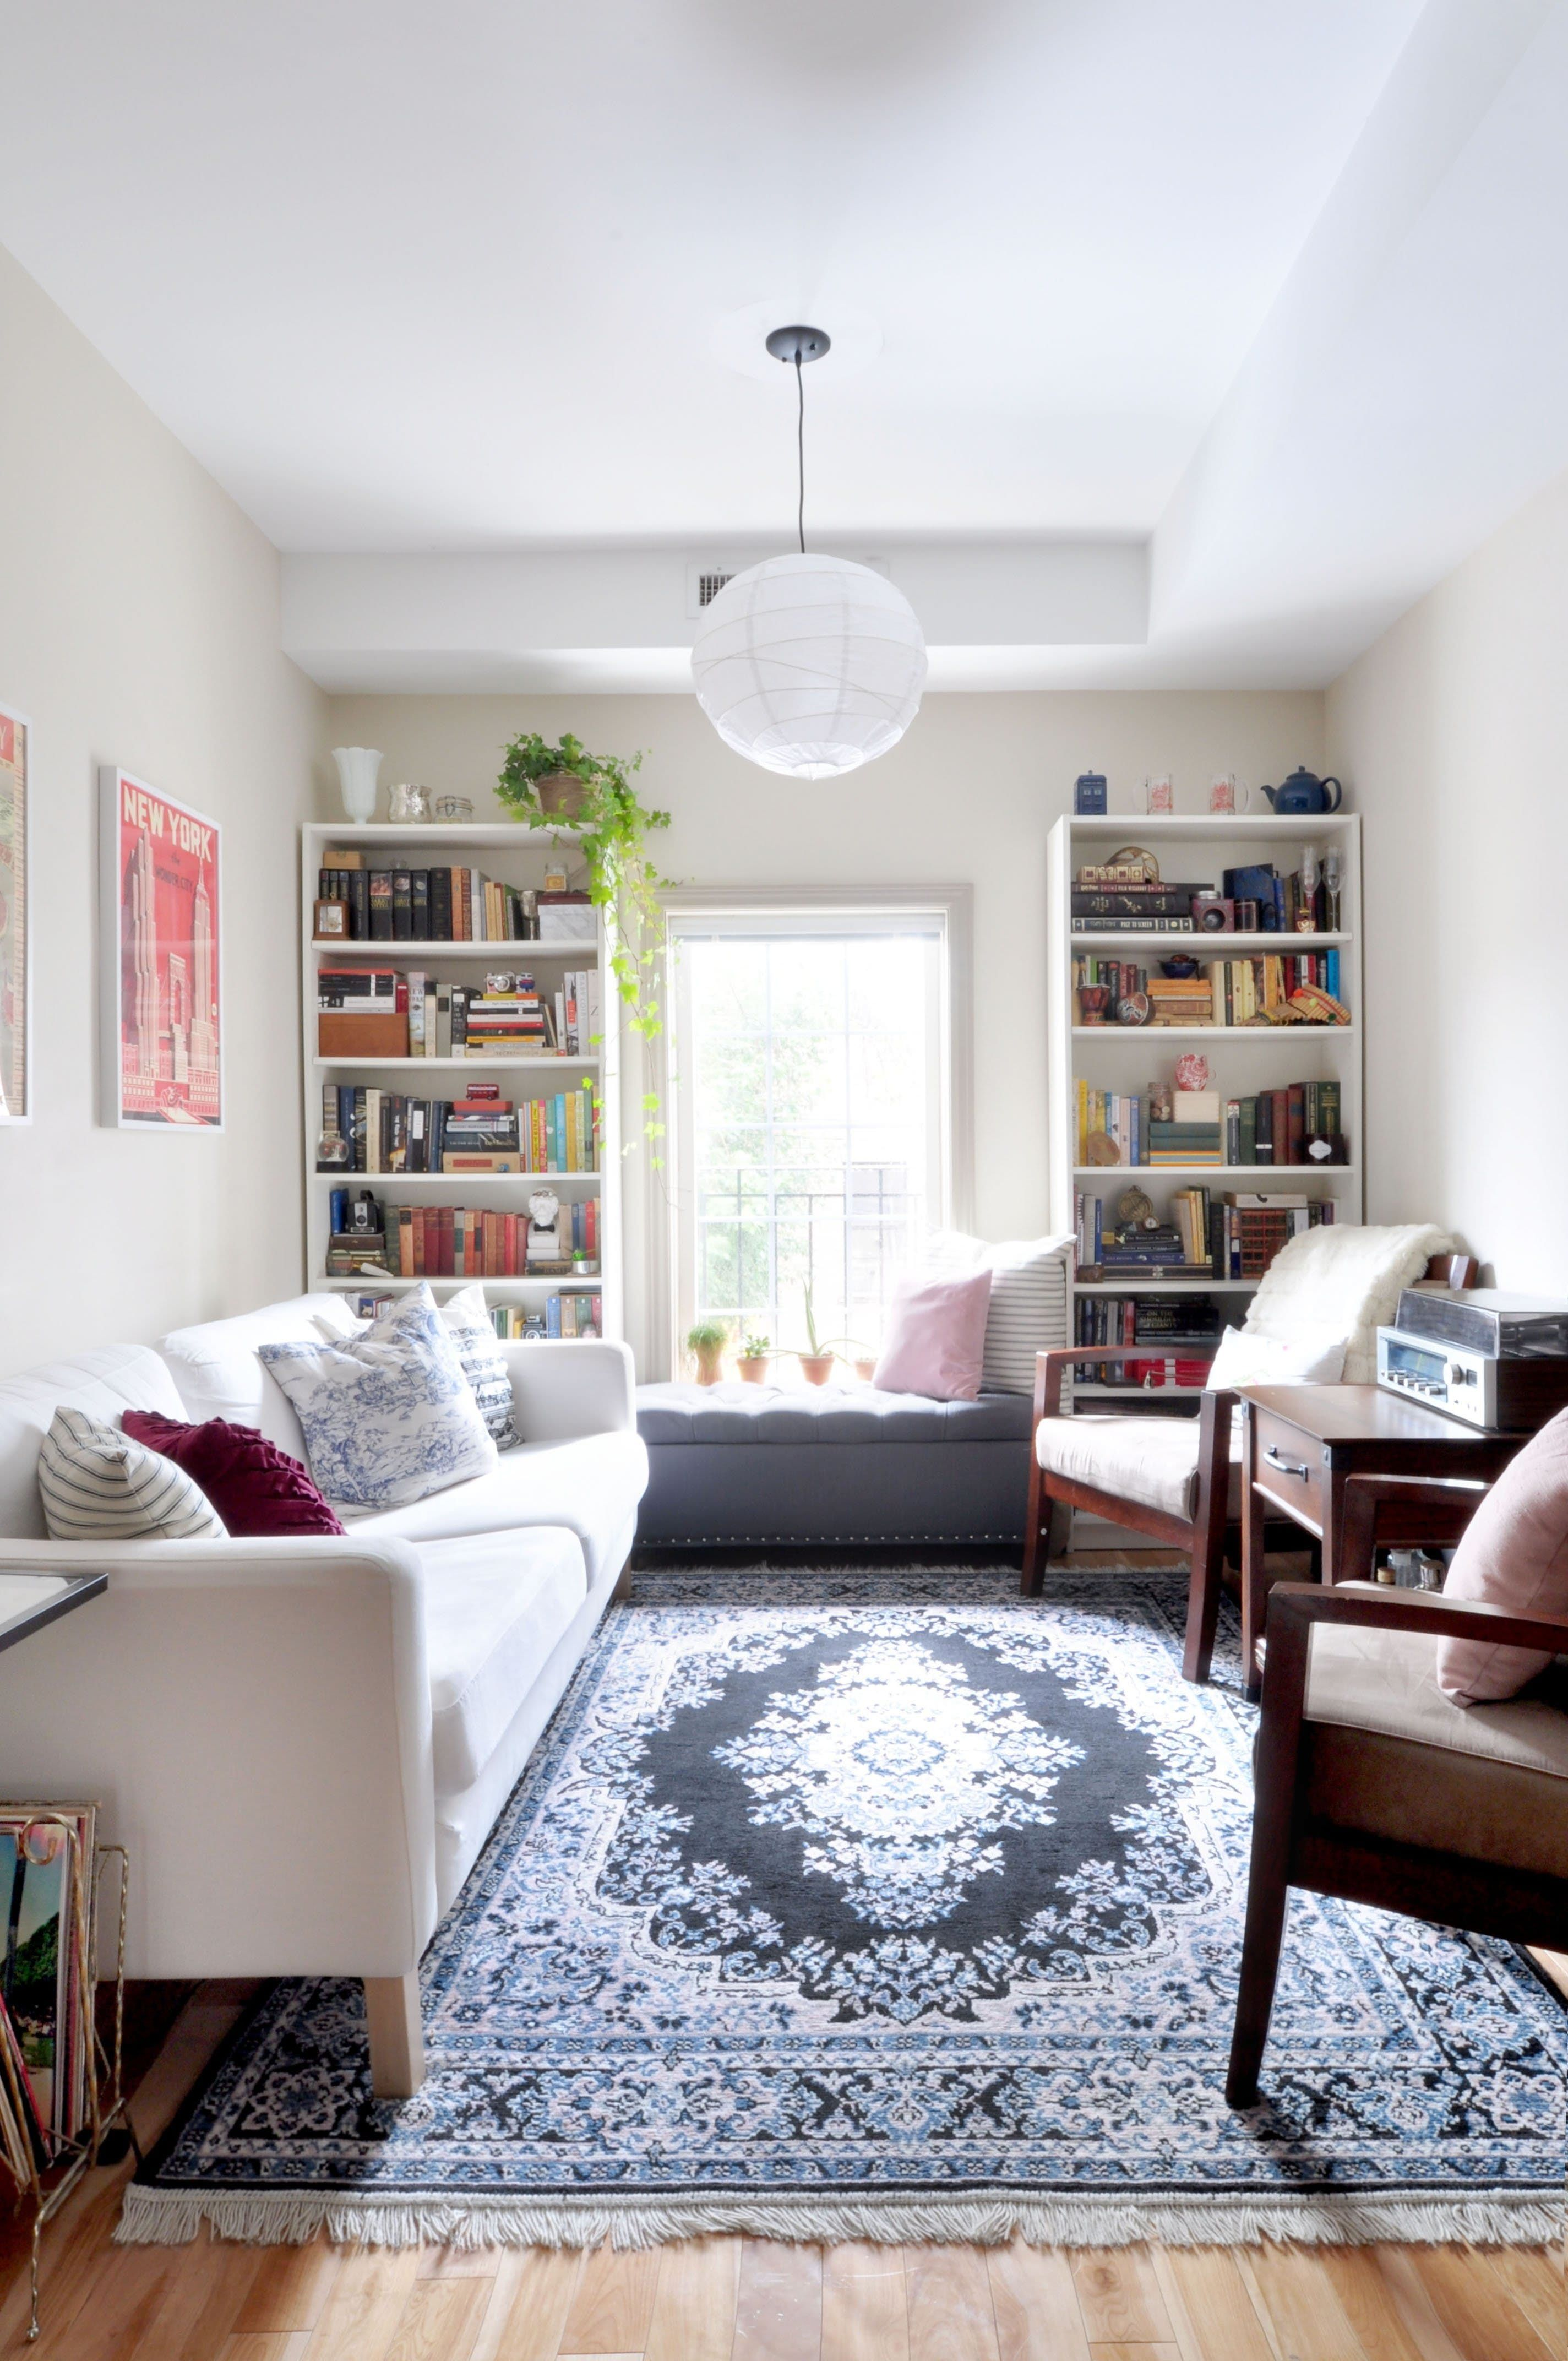 Interior Design For Living Room For Small Space: A (Seemingly) Counterintuitive Trick That's A Must For